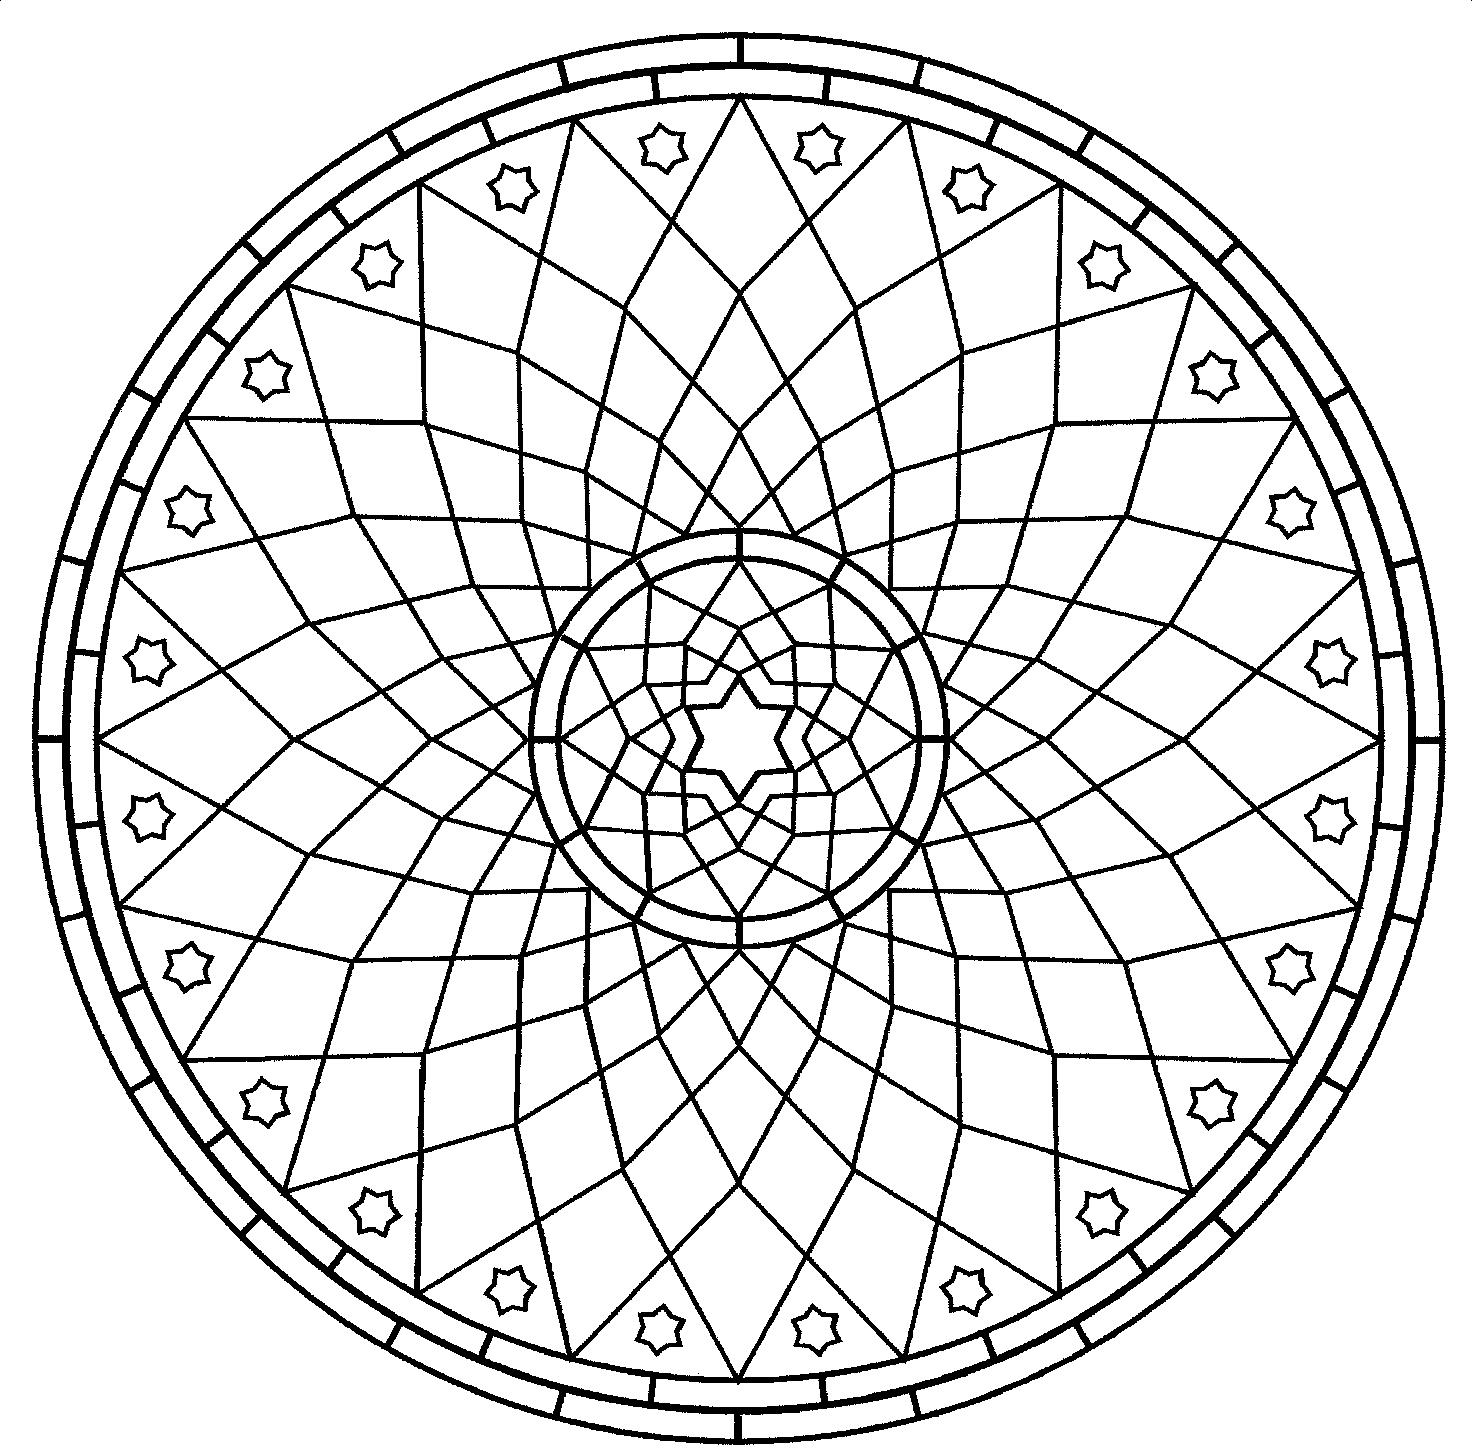 free mandala coloring pages for kids - Free Easy Coloring Pages